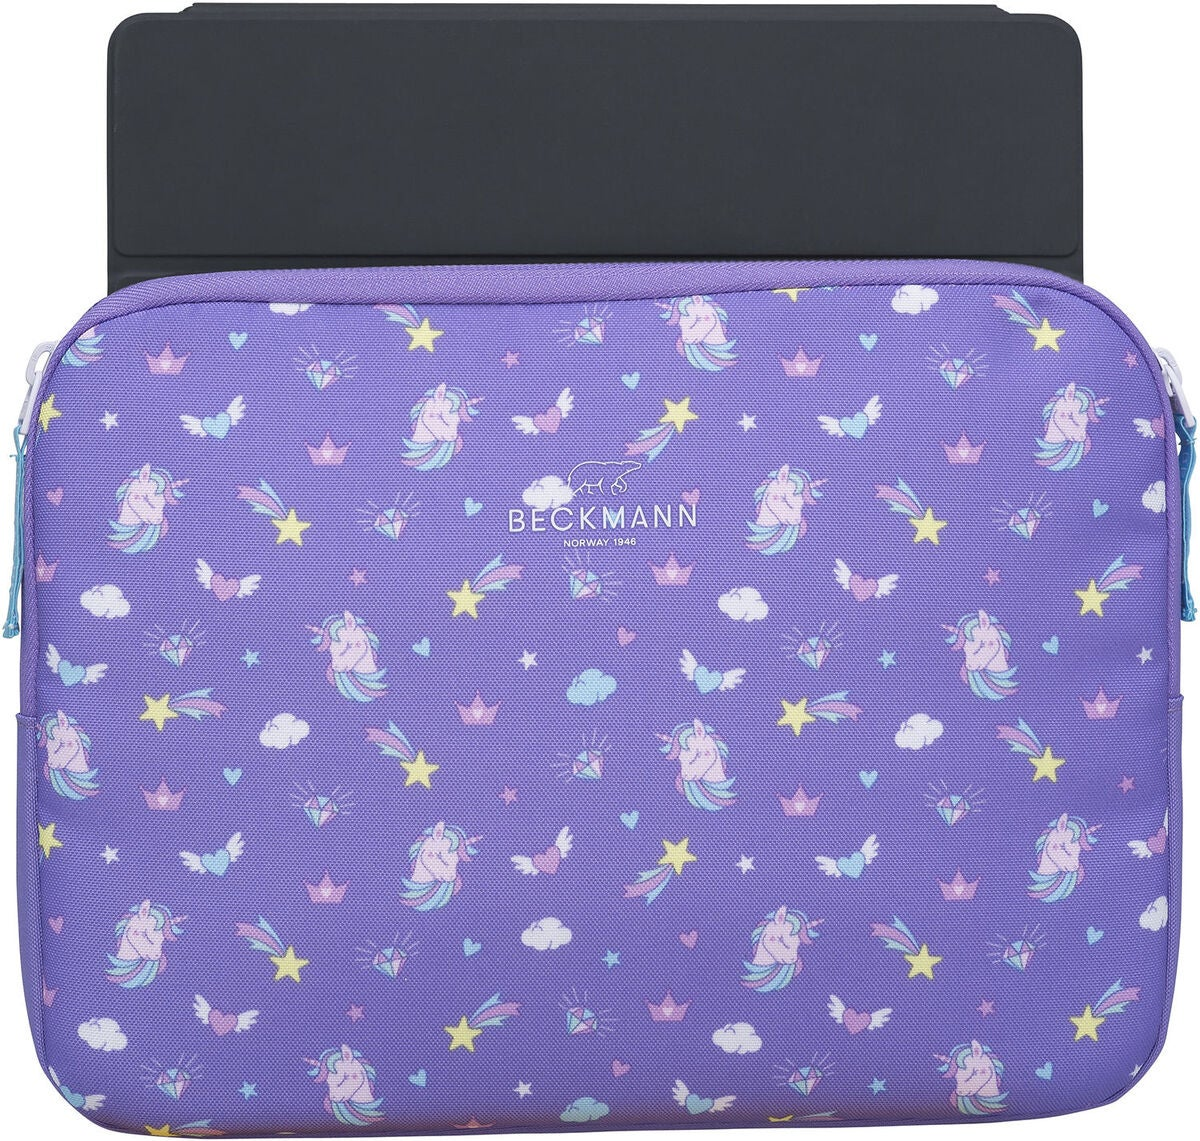 "Beckmann Tablet Cover 12,9"", Dream"